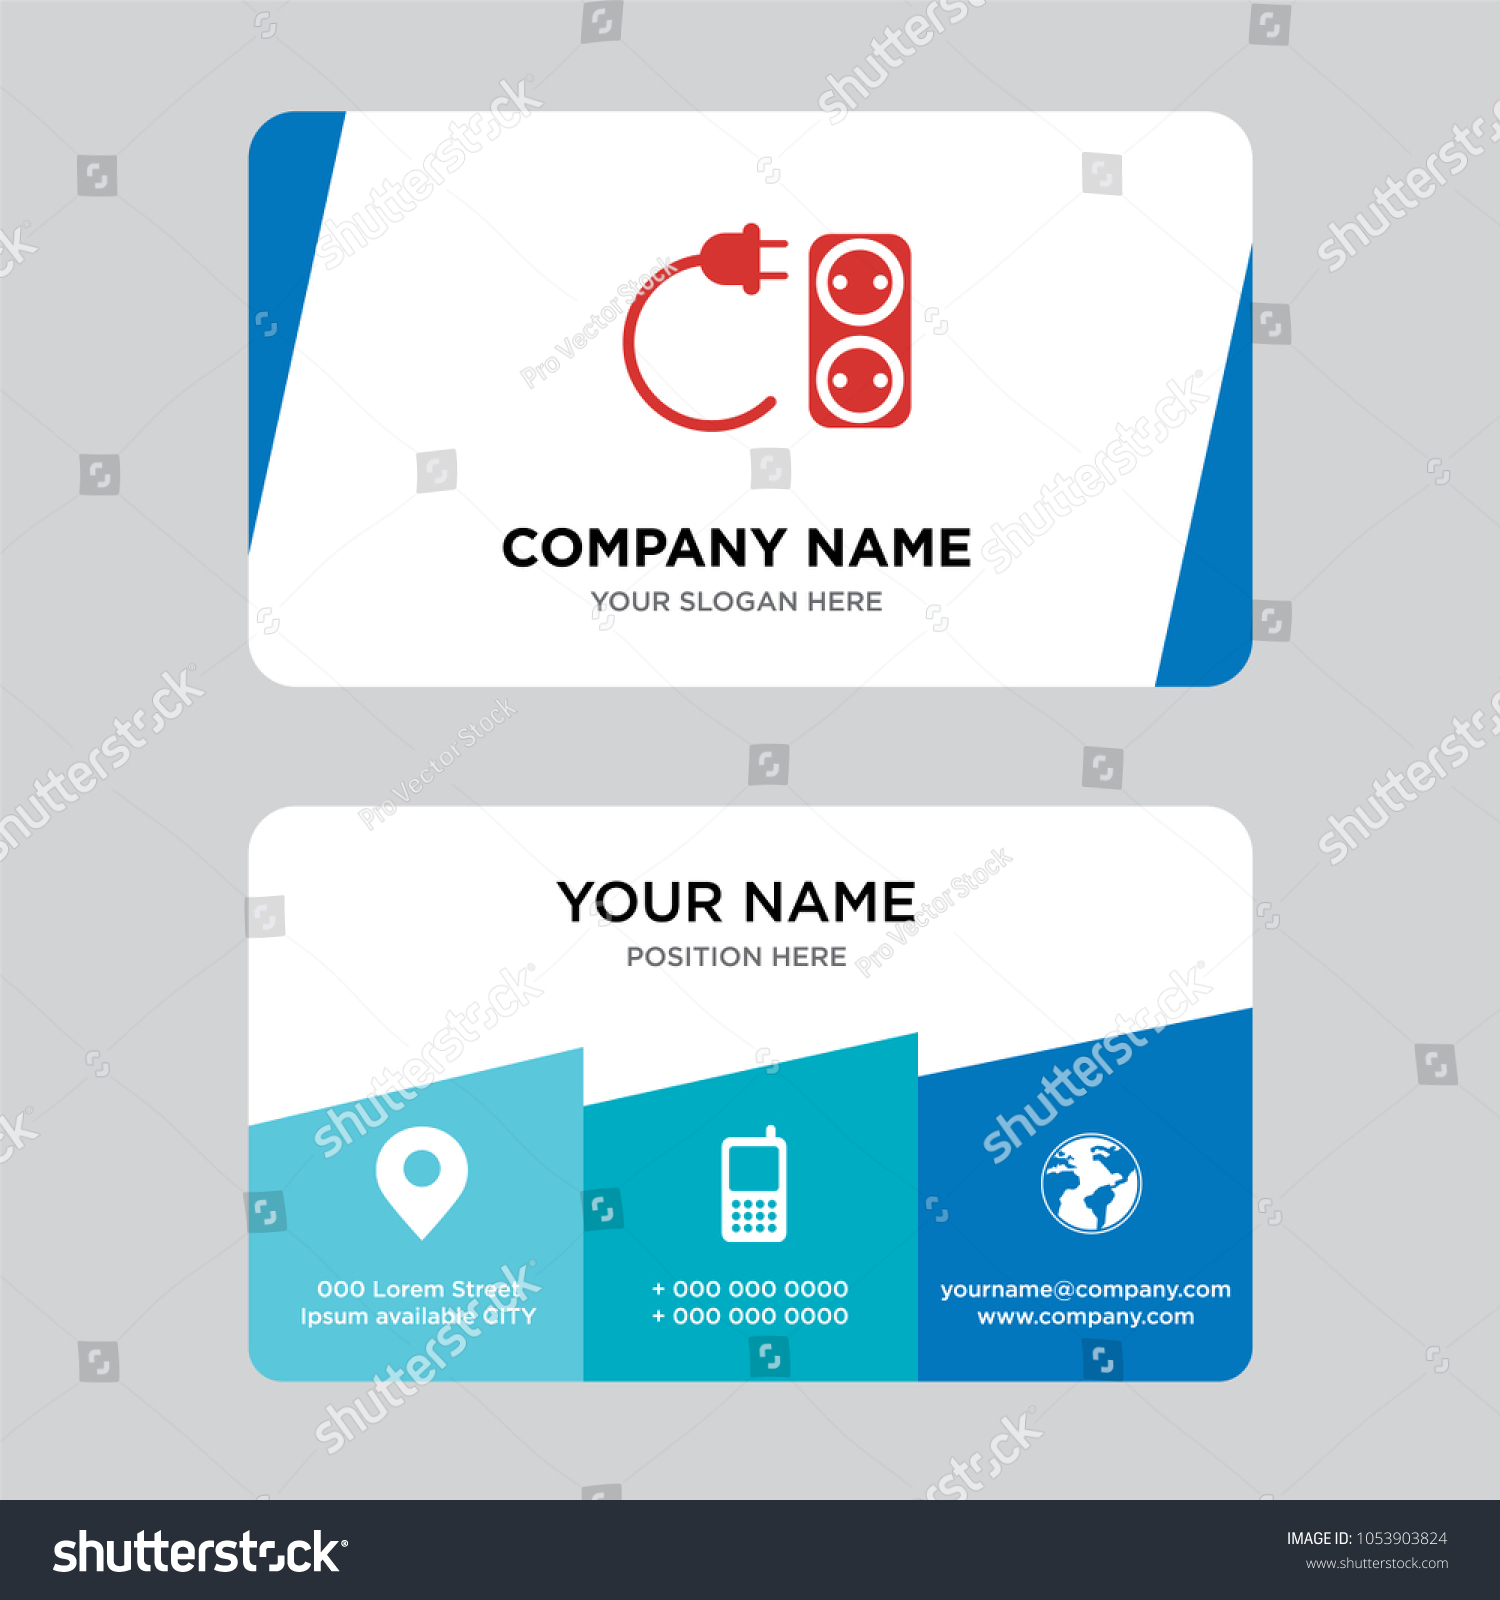 Electrical contractor business card design template stock vector electrical contractor business card design template visiting for your company modern creative and clean colourmoves